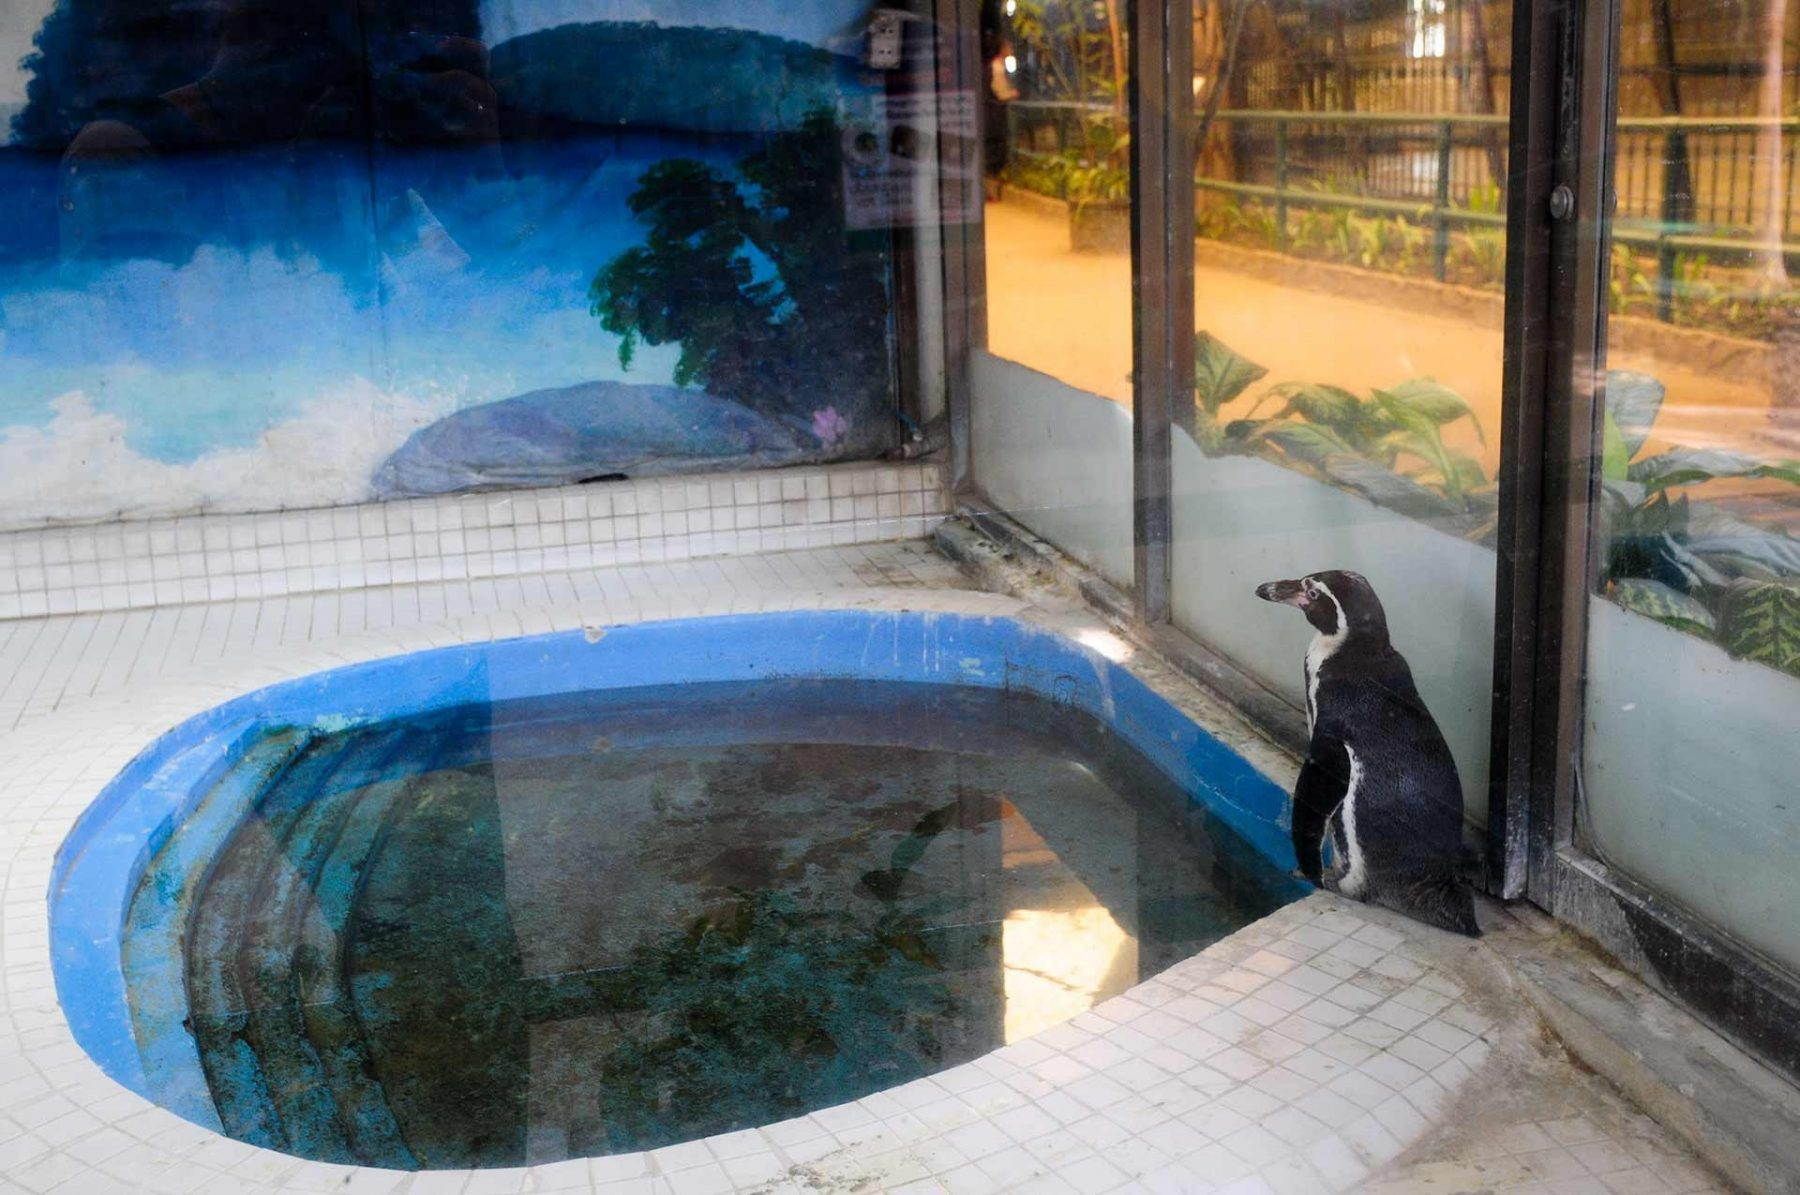 A lone Humboldt penguin at the Pata Mall in Bangkok. Thailand, 2009.